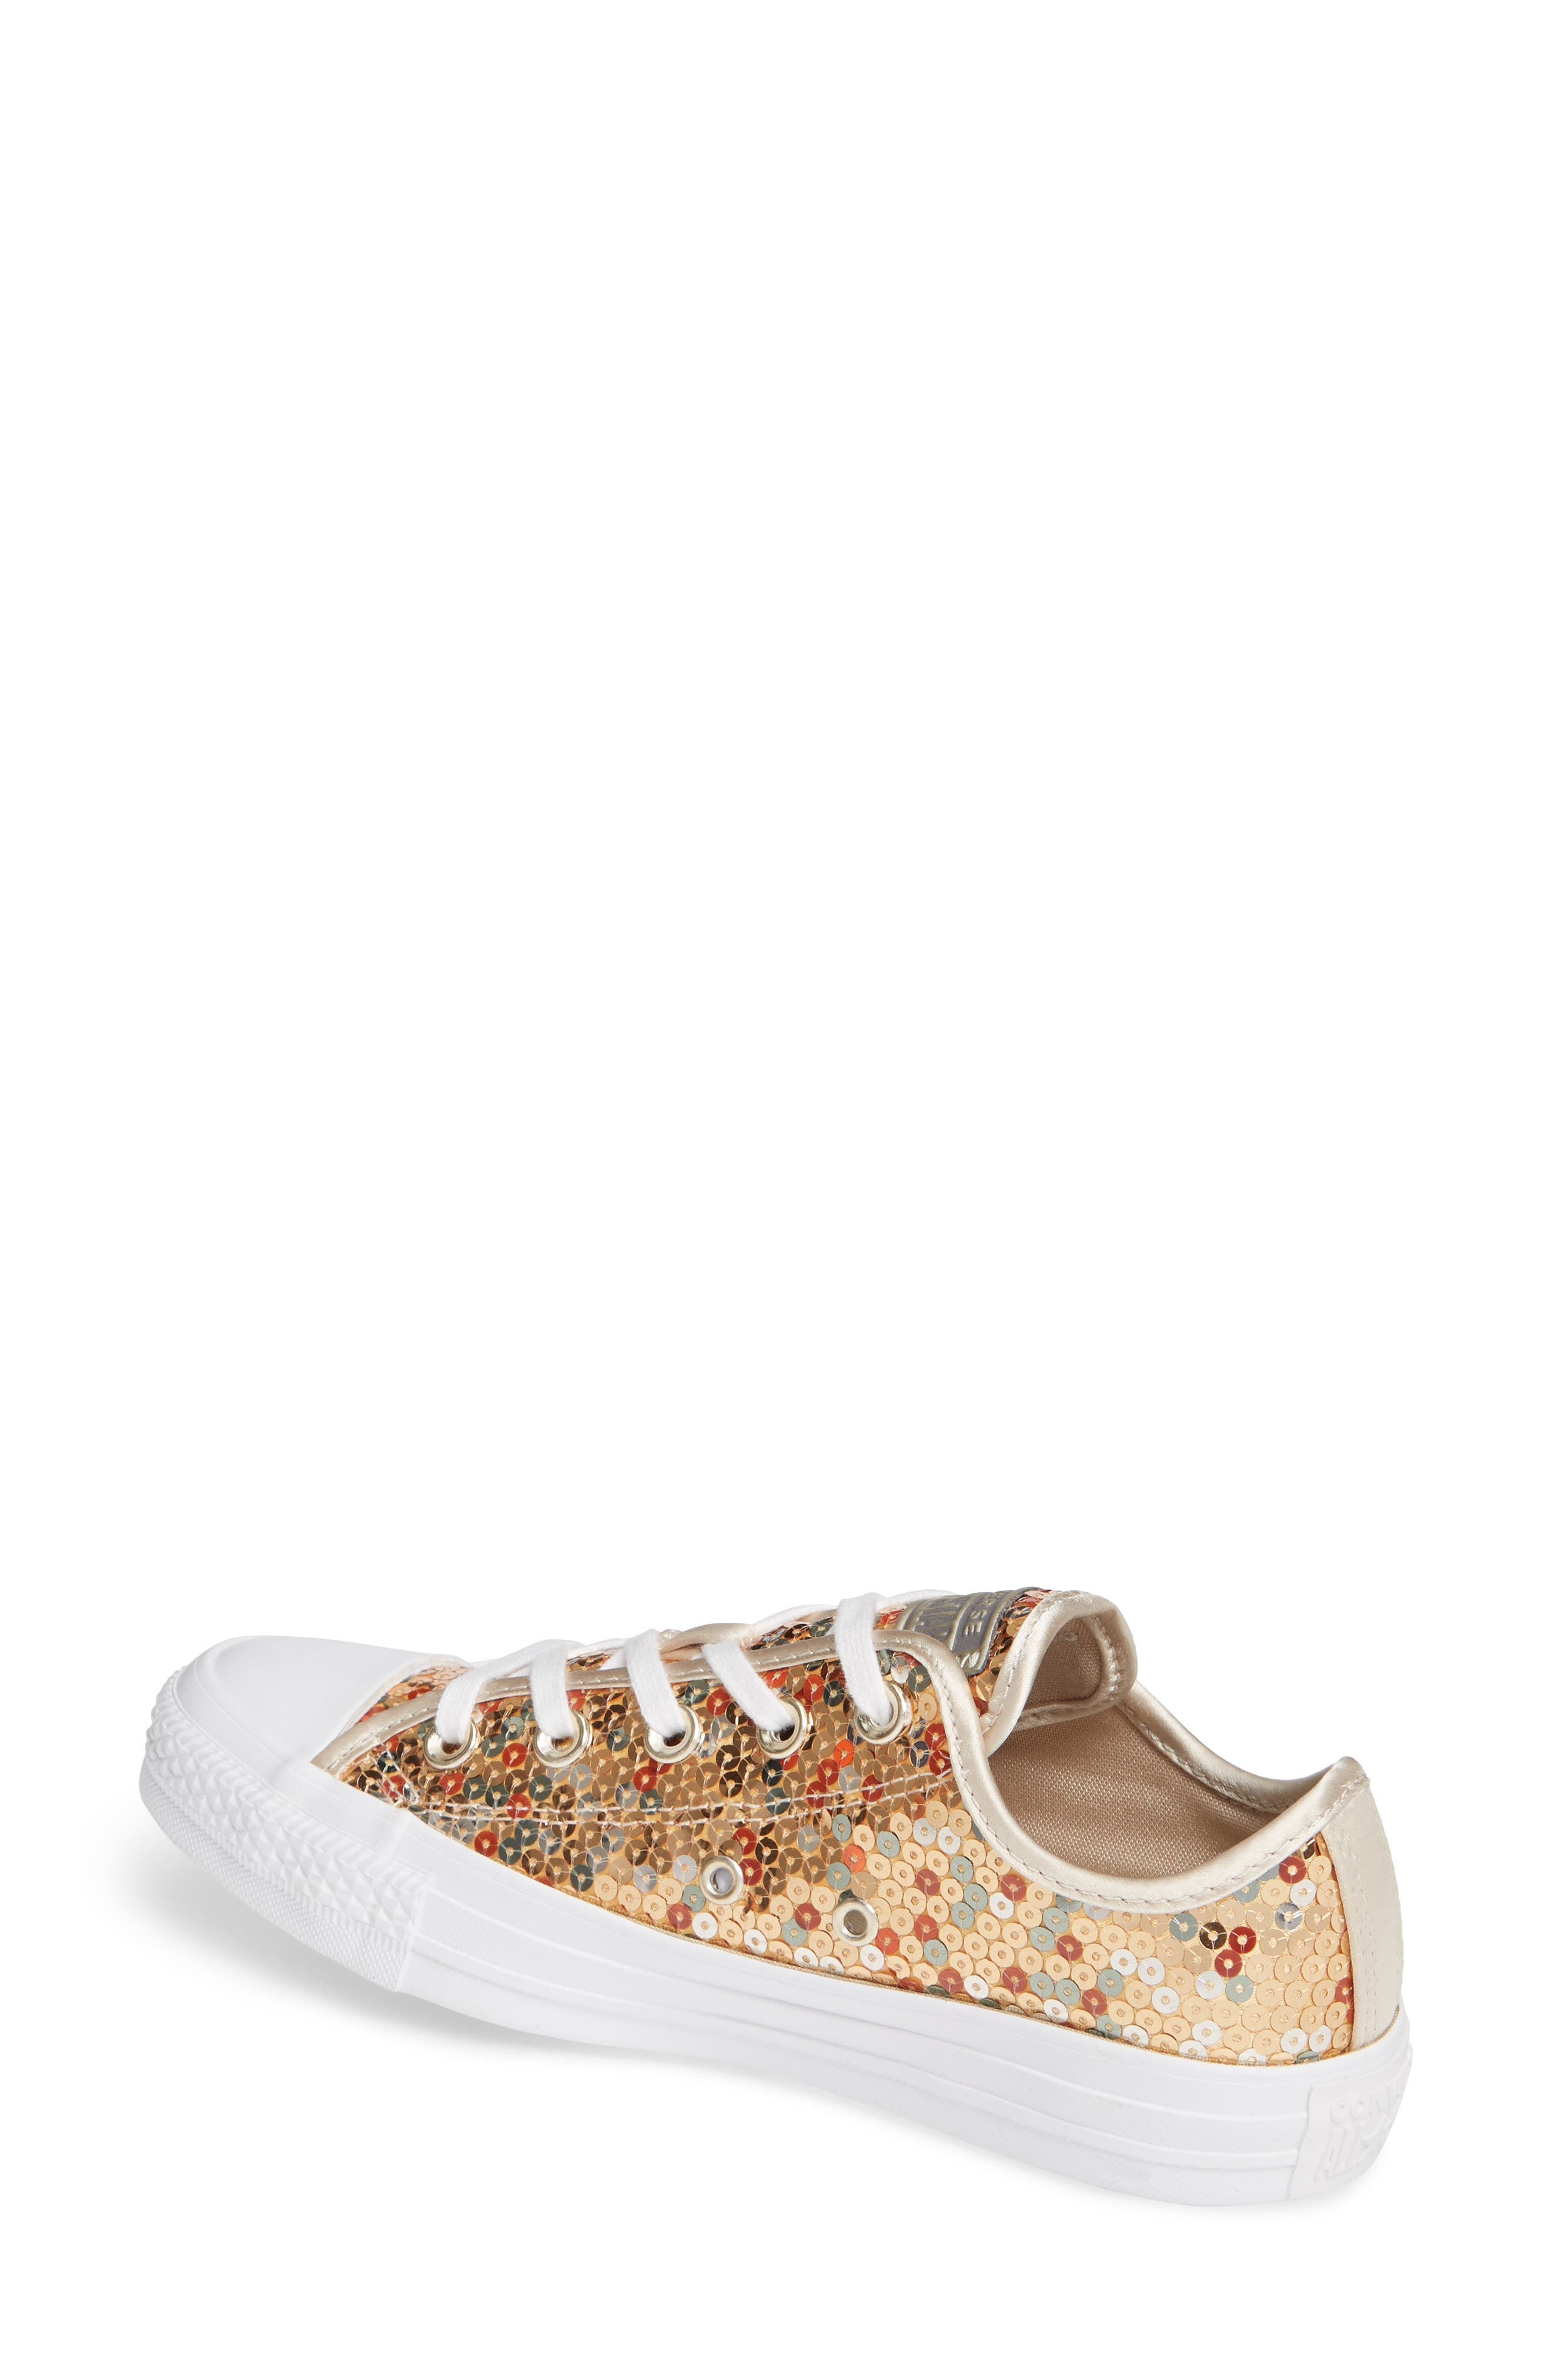 CONVERSE, Chuck Taylor<sup>®</sup> All Star<sup>®</sup> Sequin Low Top Sneaker, Alternate thumbnail 2, color, GOLD SEQUINS